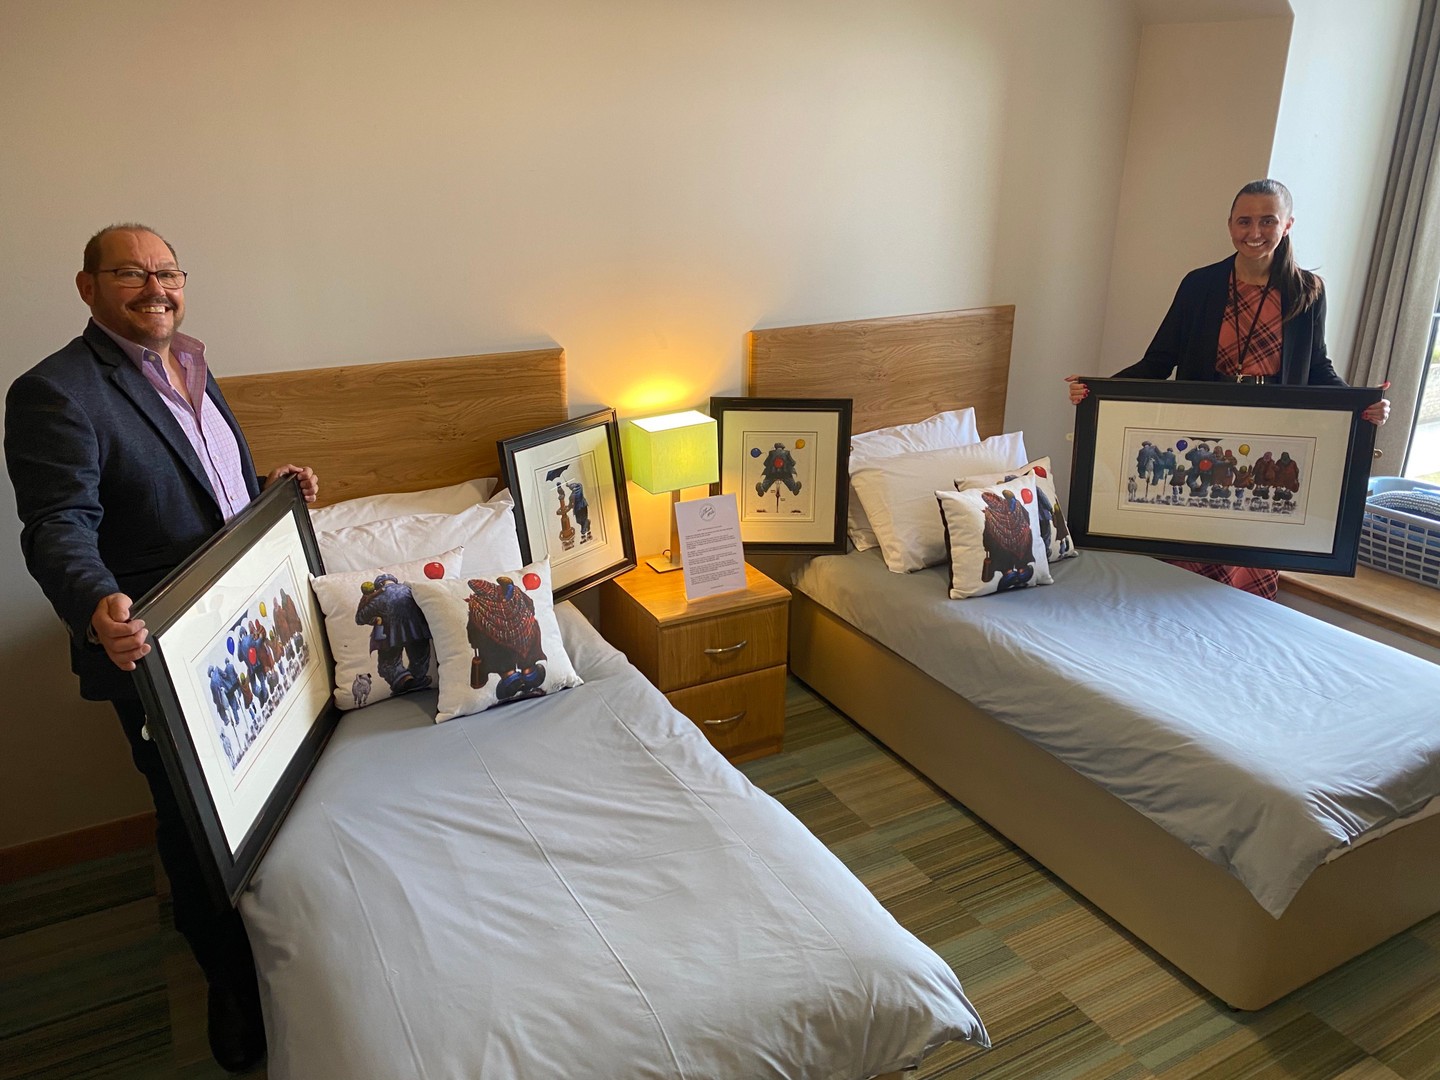 Gadgies on show at Ronald McDonald House in Glasgow